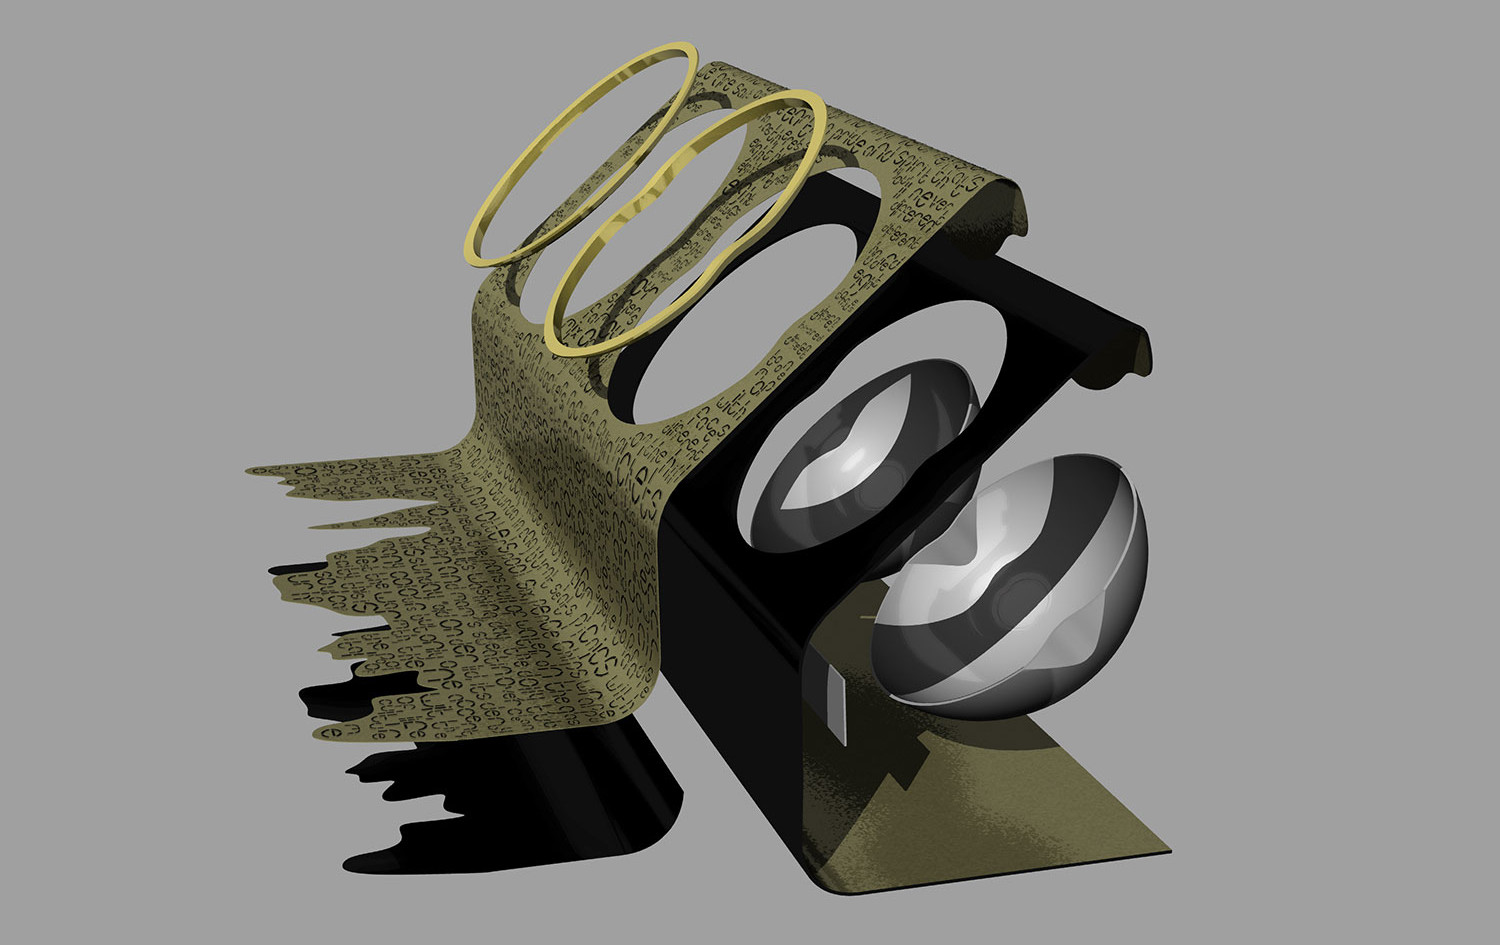 Exploded CAD model of components in design